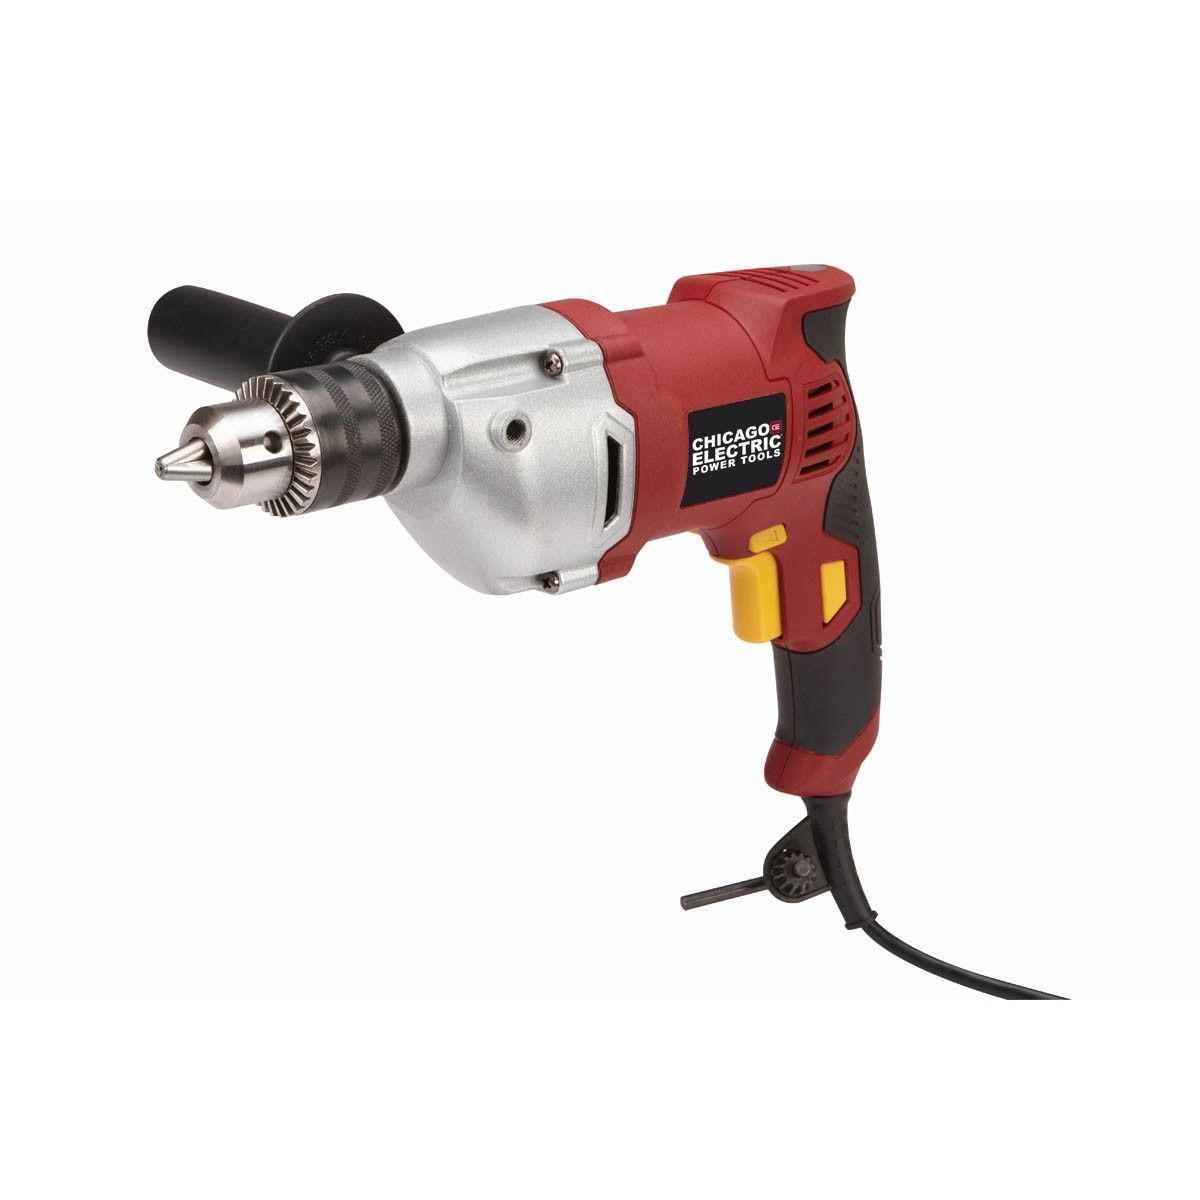 1/2 in  Heavy Duty Variable Speed Reversible Drill | Harbor Freight